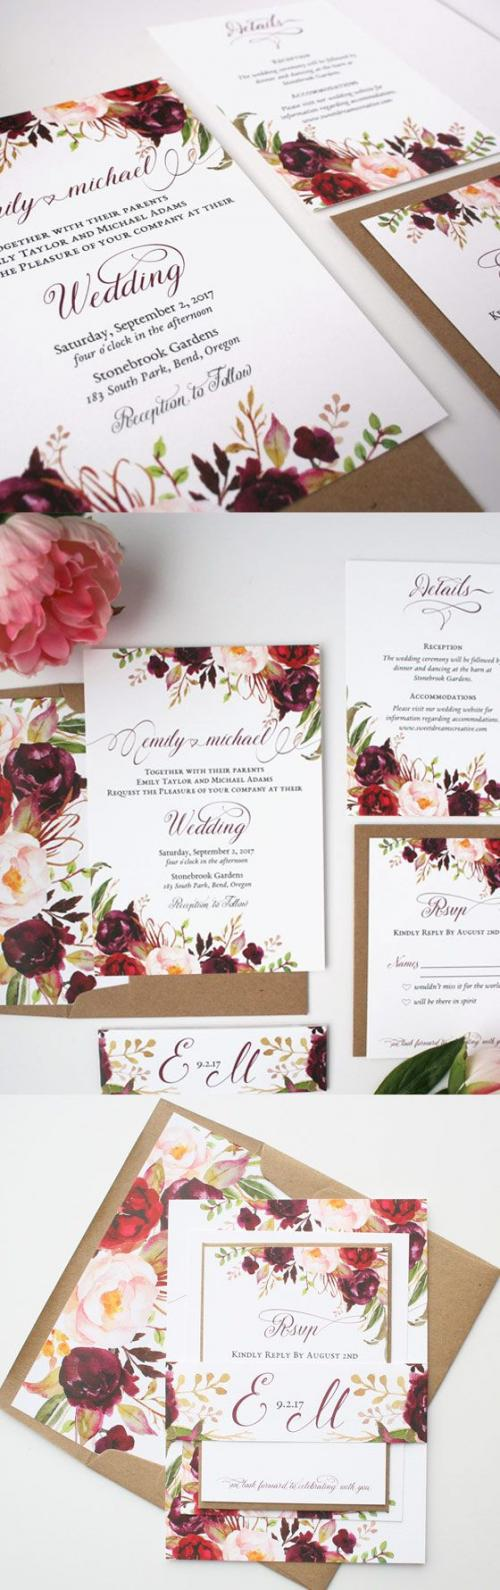 fall_wedding_invitation_2_0